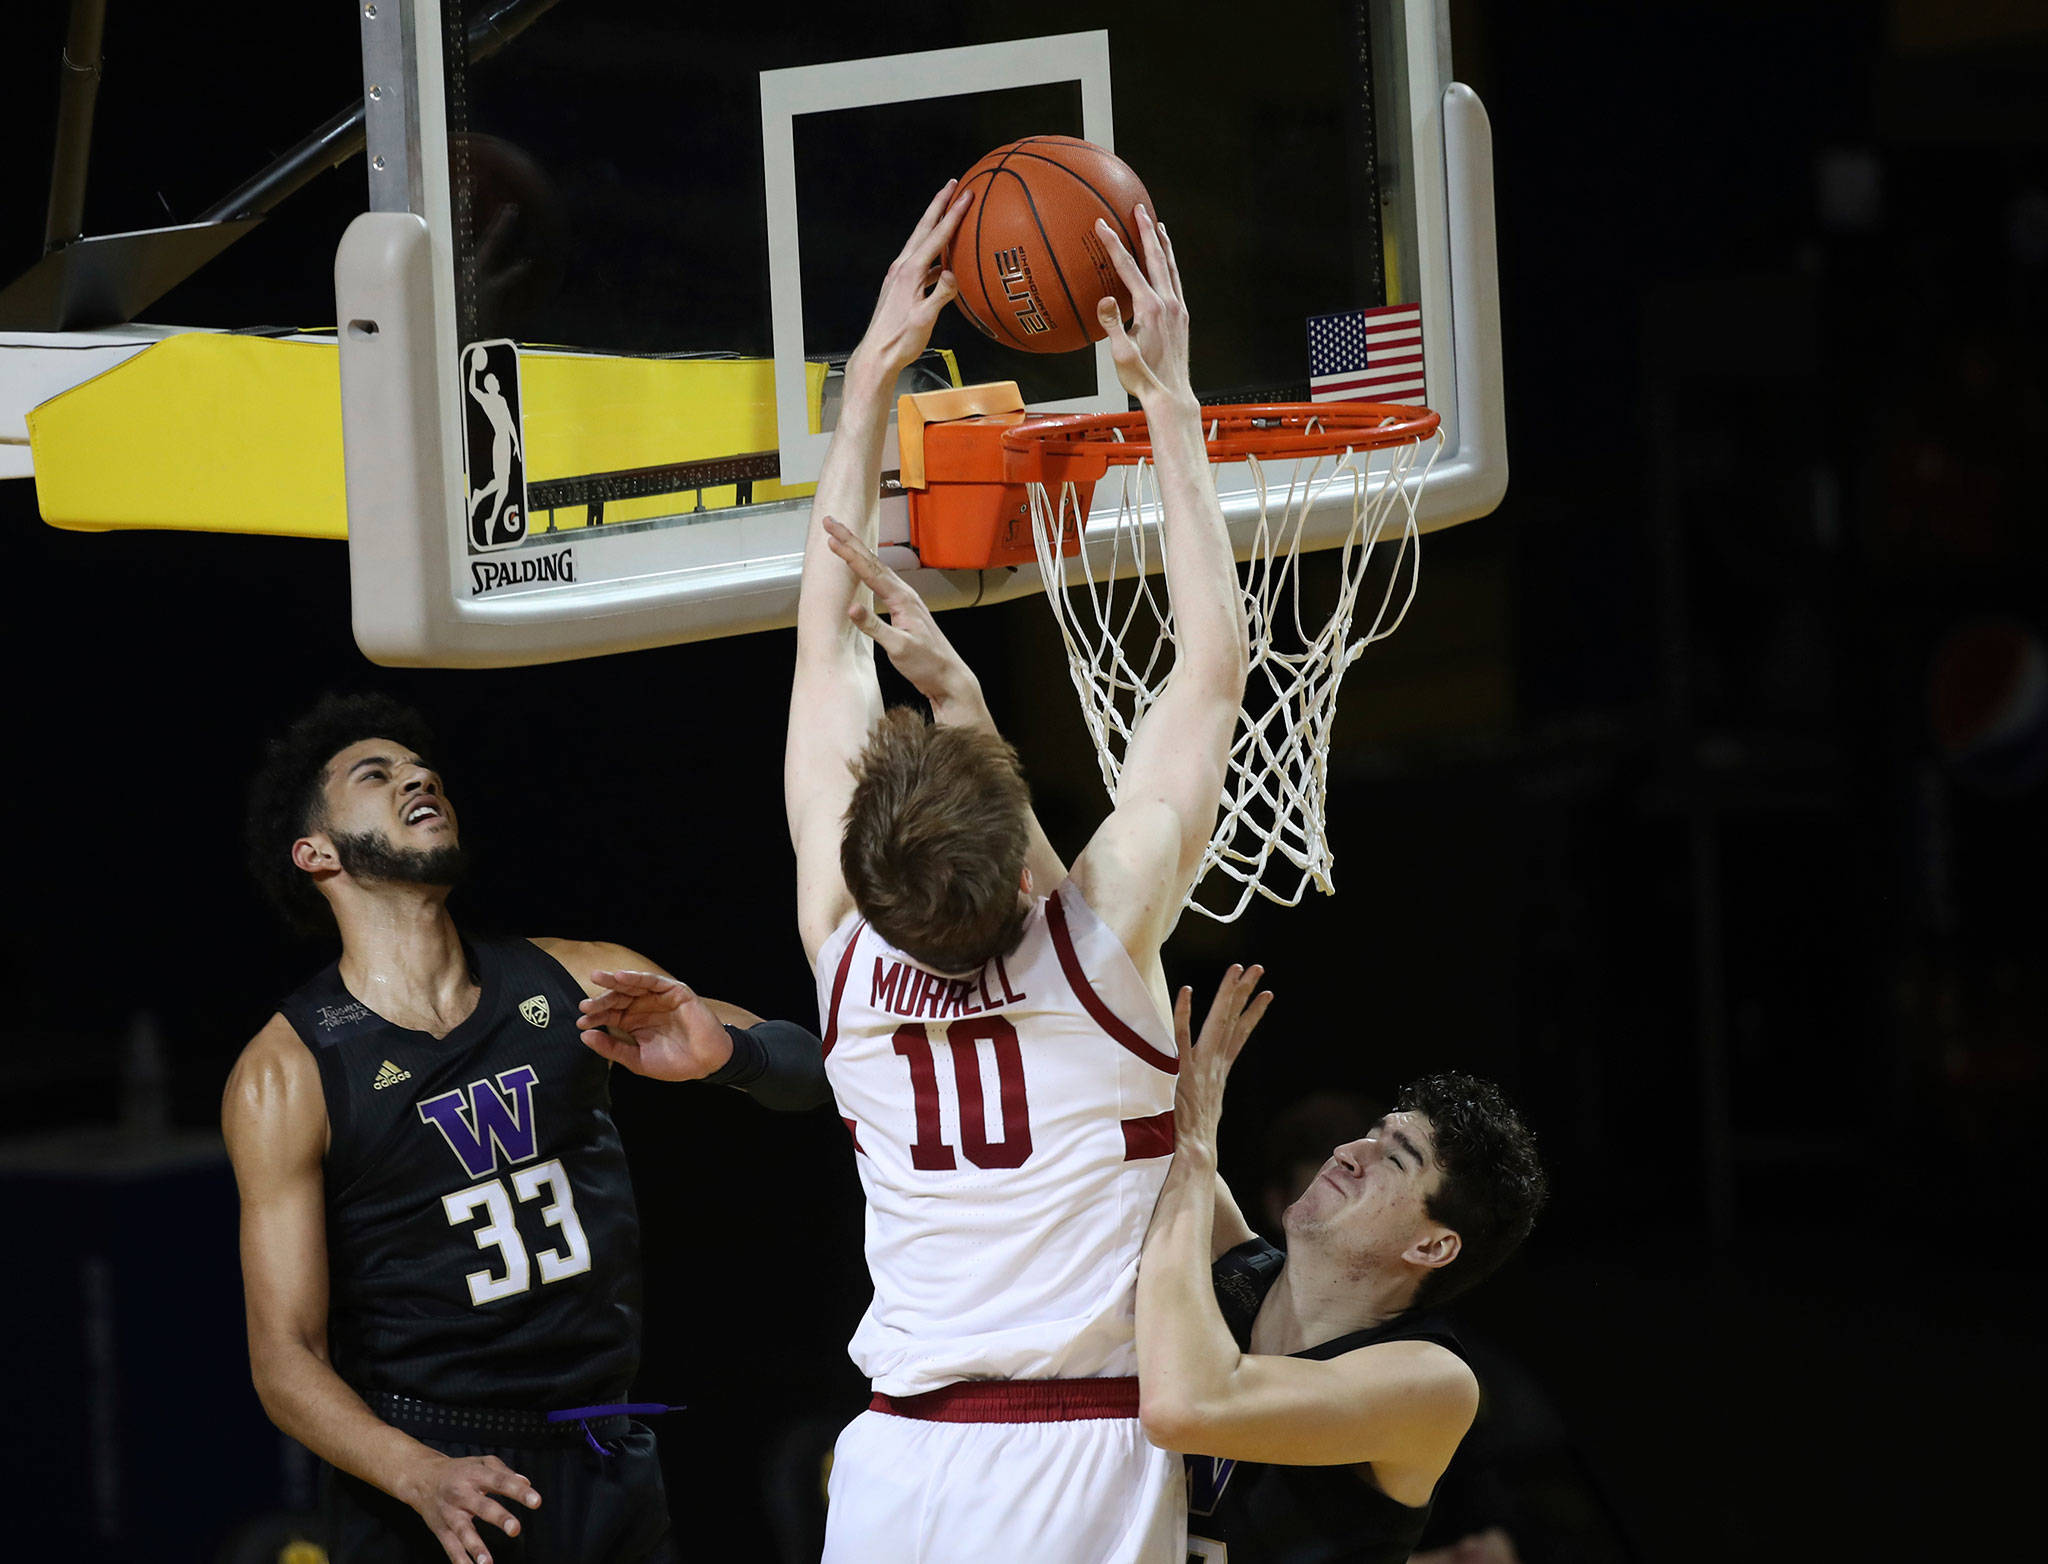 Stanford's Max Murrell (center) dunks against Washington's J'Raan Brooks (left) and Riley Sorn (right) during the first half of a game Jan. 7, 2021, in Santa Cruz, Calif. (AP Photo/Josie Lepe)